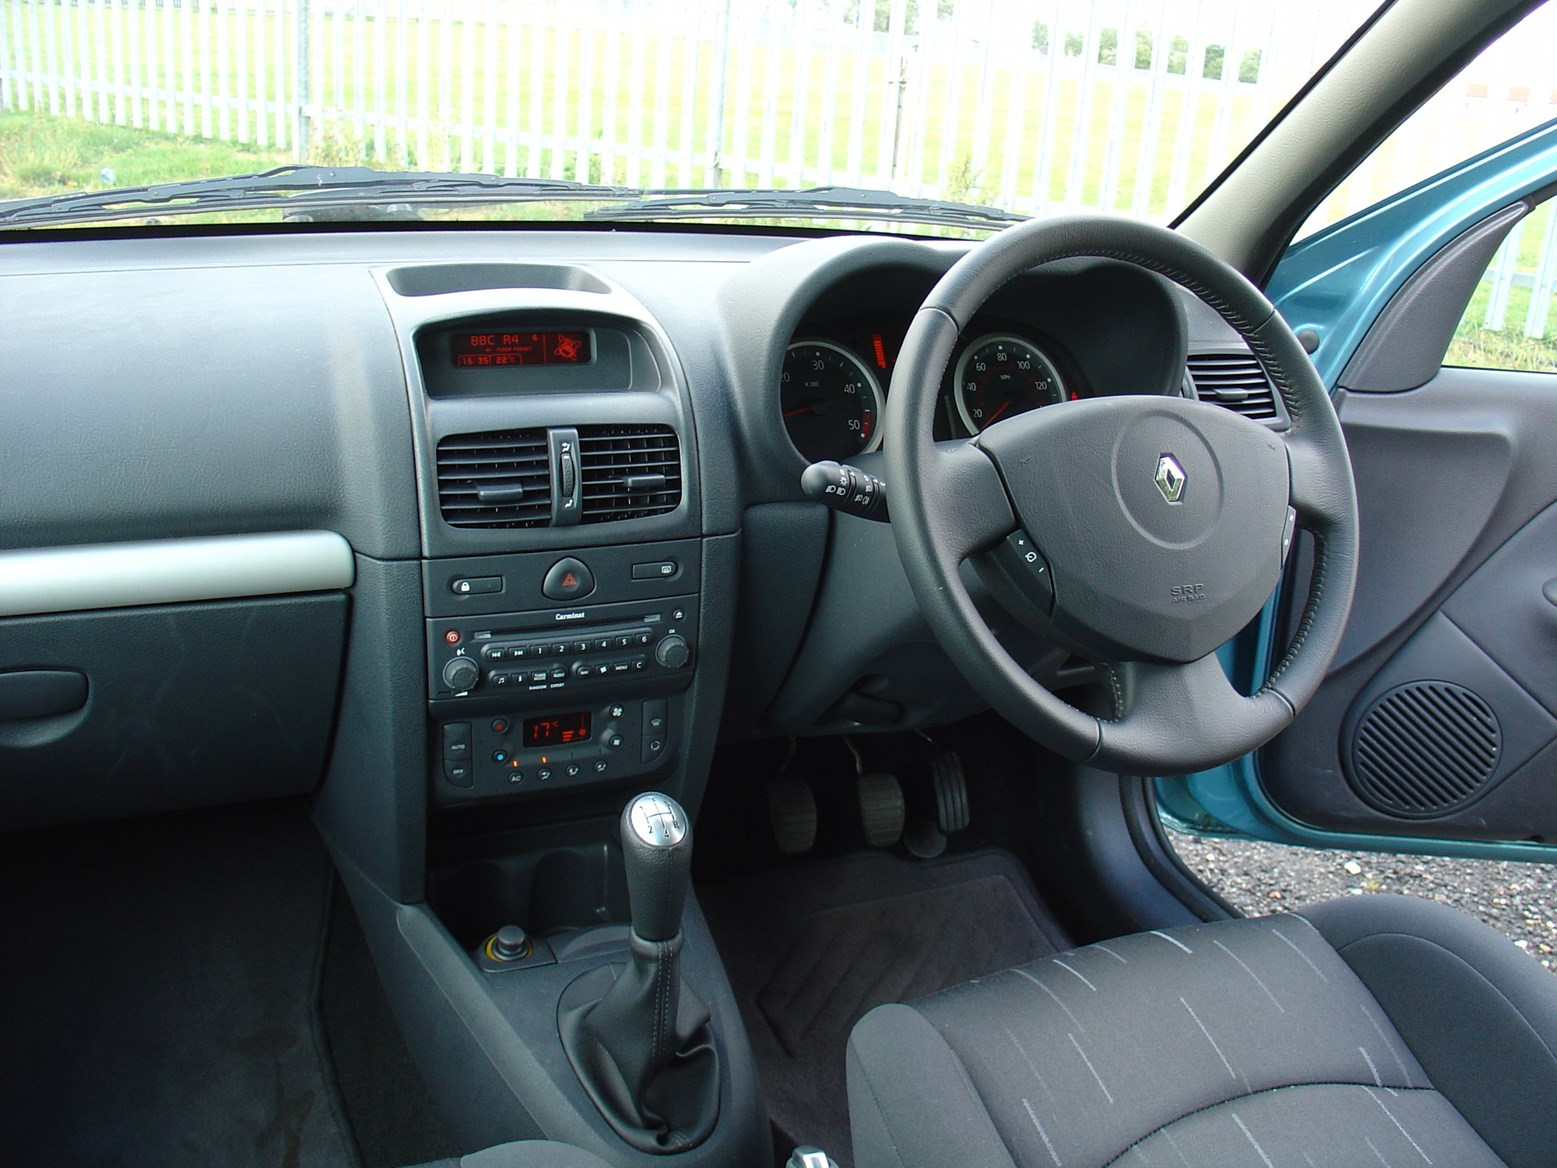 Renault clio hatchback 2001 2008 photos parkers for Interieur clio 4